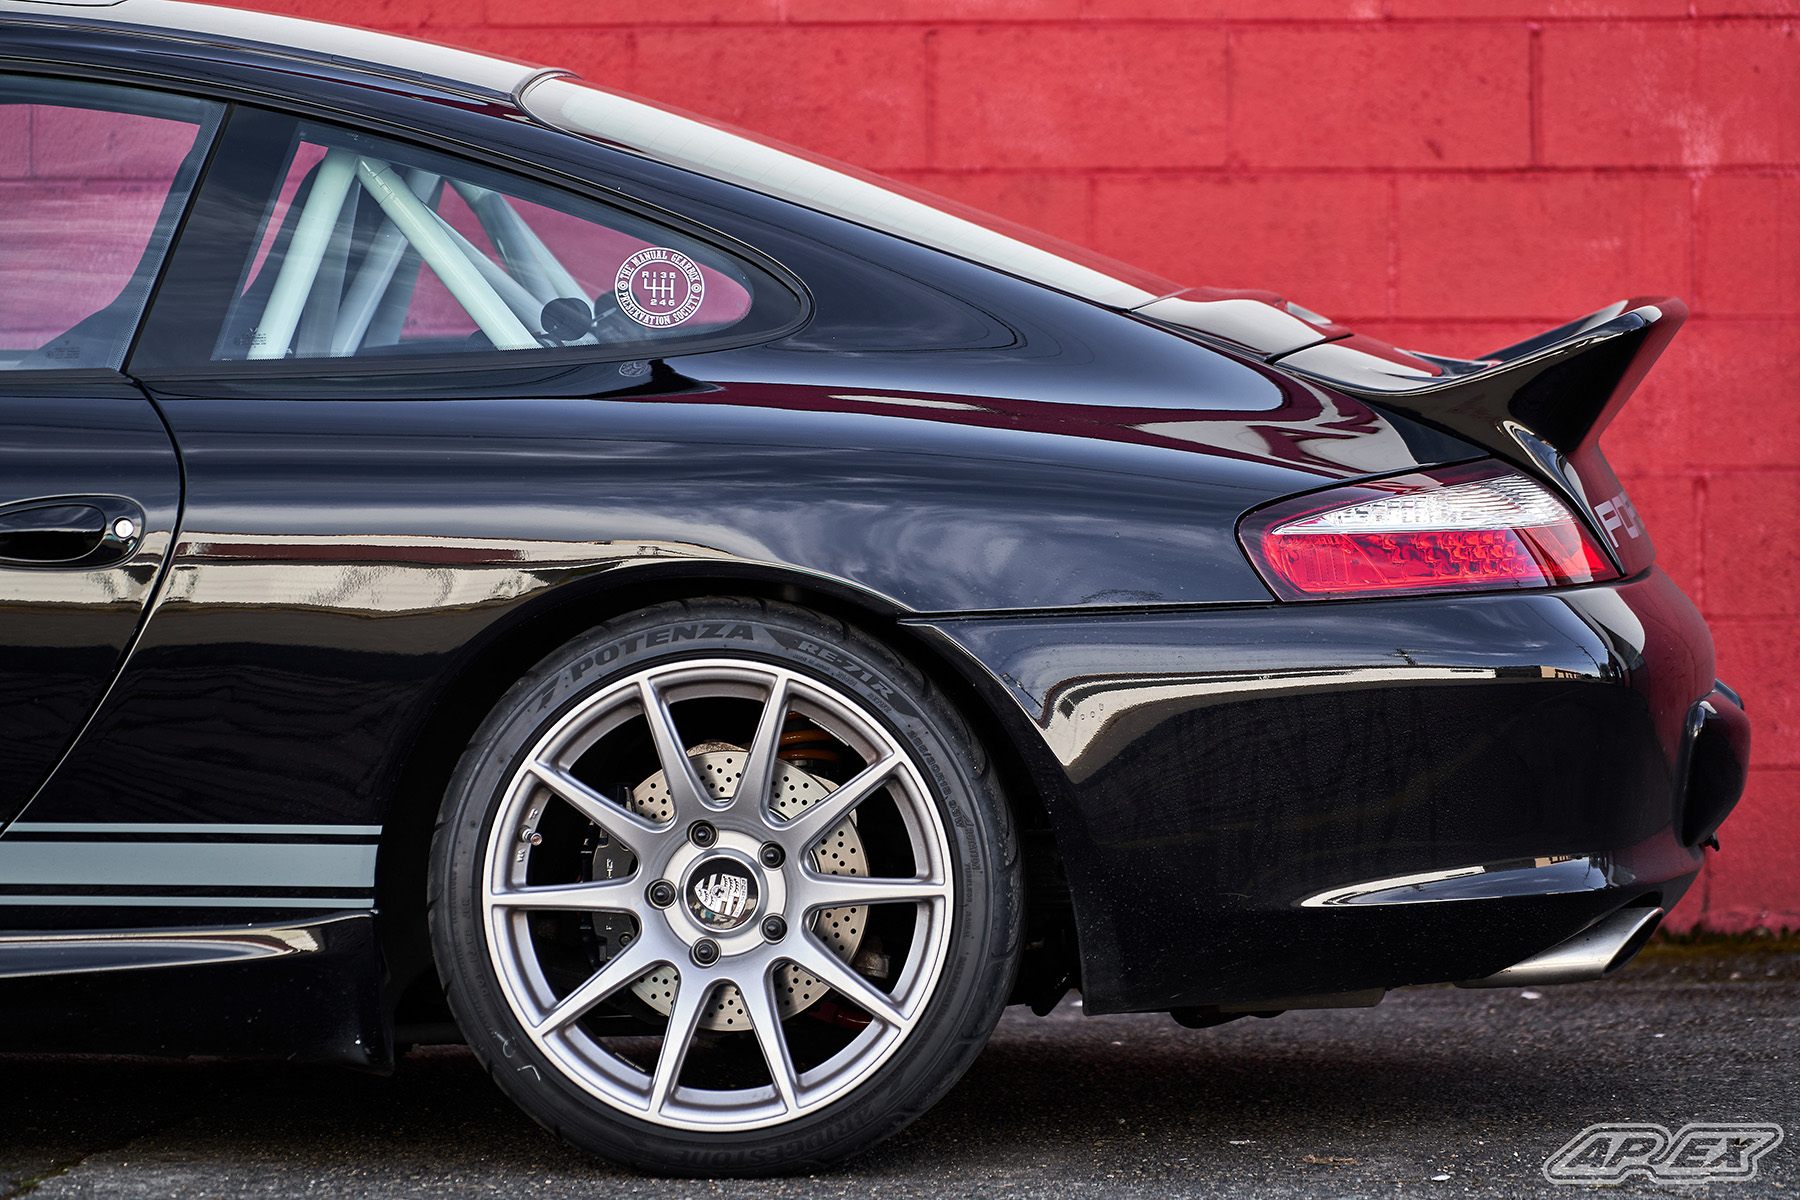 2002 Porsche 996 Carrera C2 on APEX SM-10 Wheels